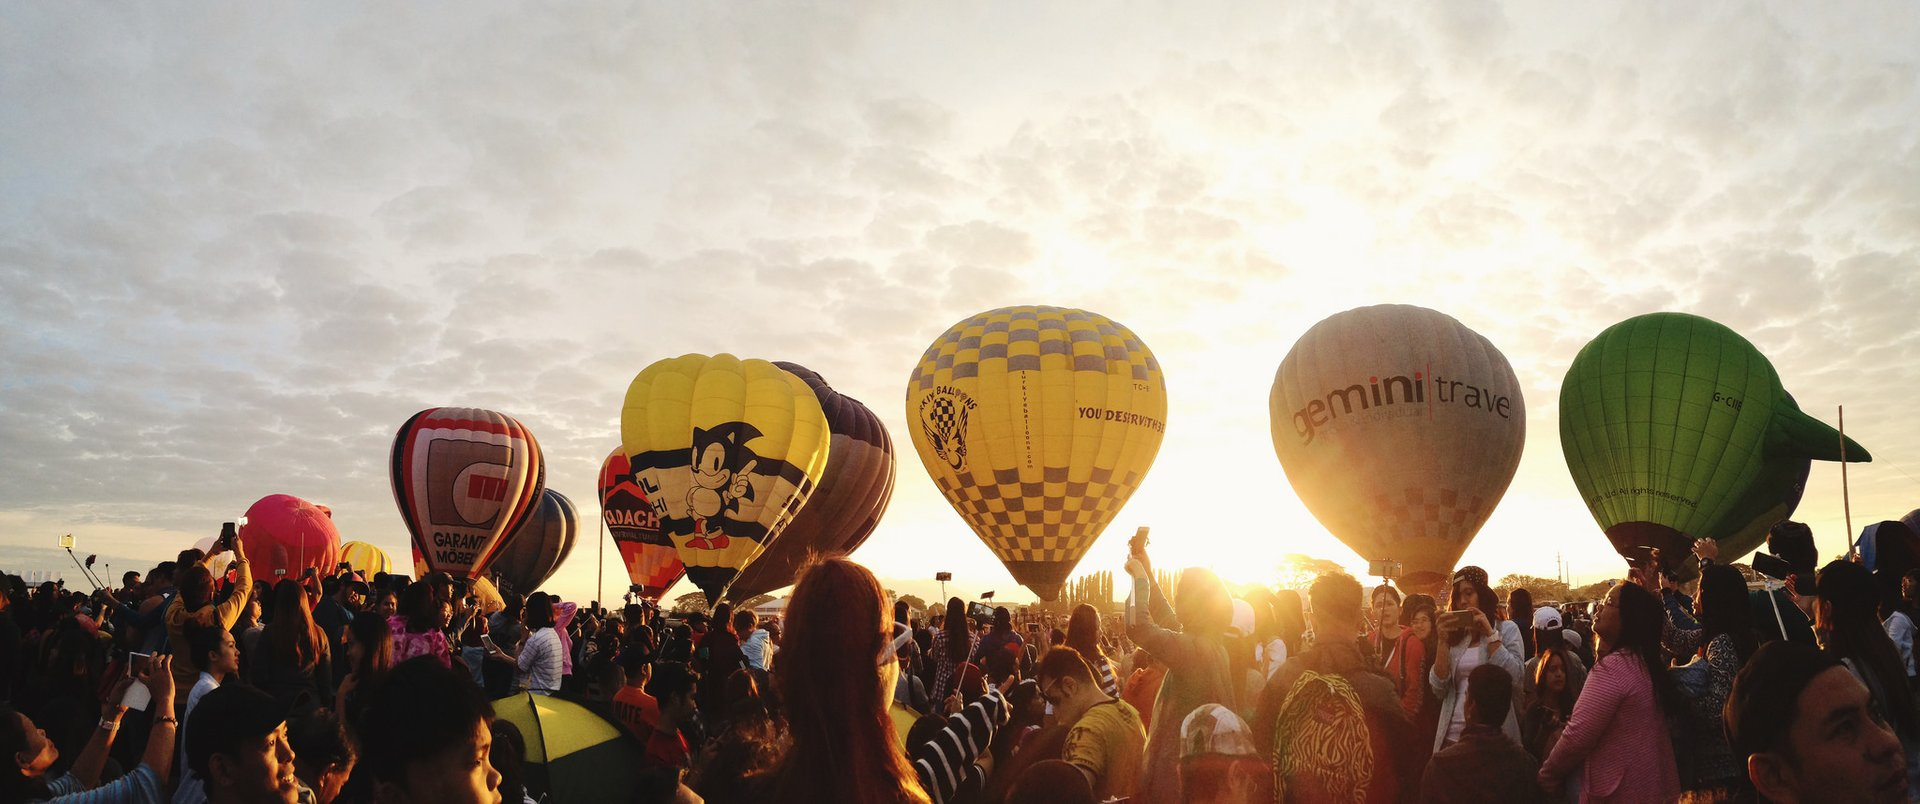 Philippine International Hot Air Balloon Fiesta in Philippines 2020 - Best Time